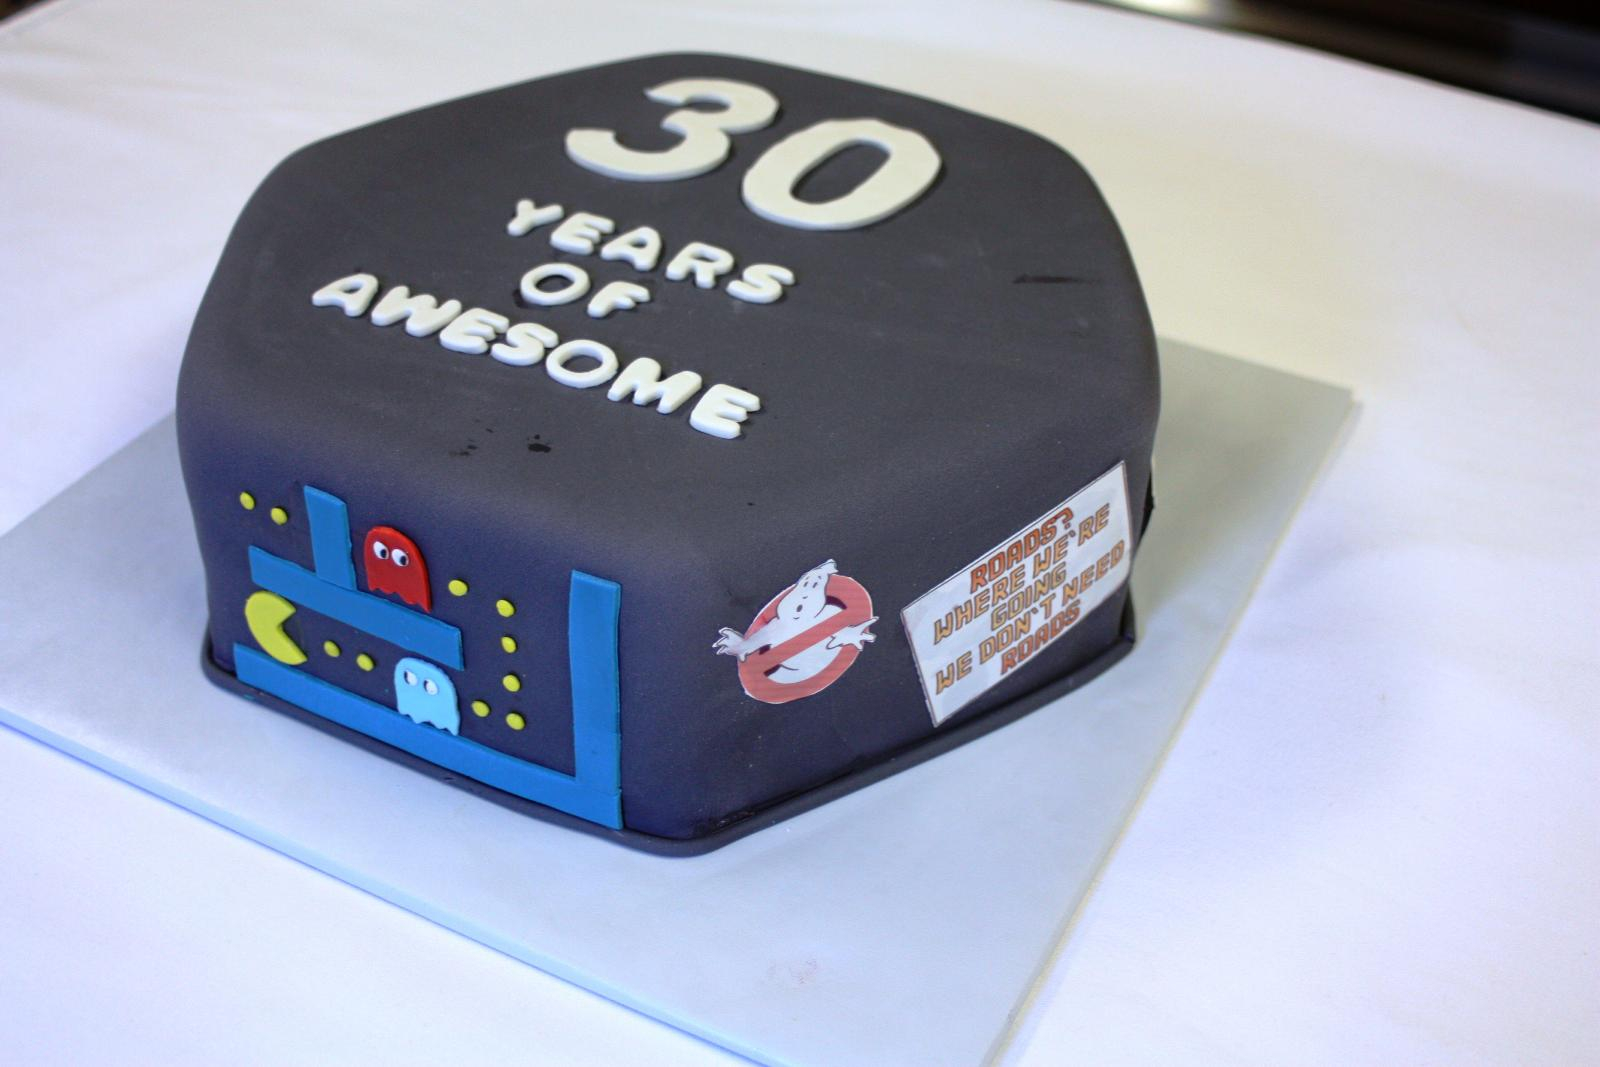 Awesome 30Th Birthday Cakes Funny 30th Birthday Cake Ideas Protoblogr Design 30th Birthday